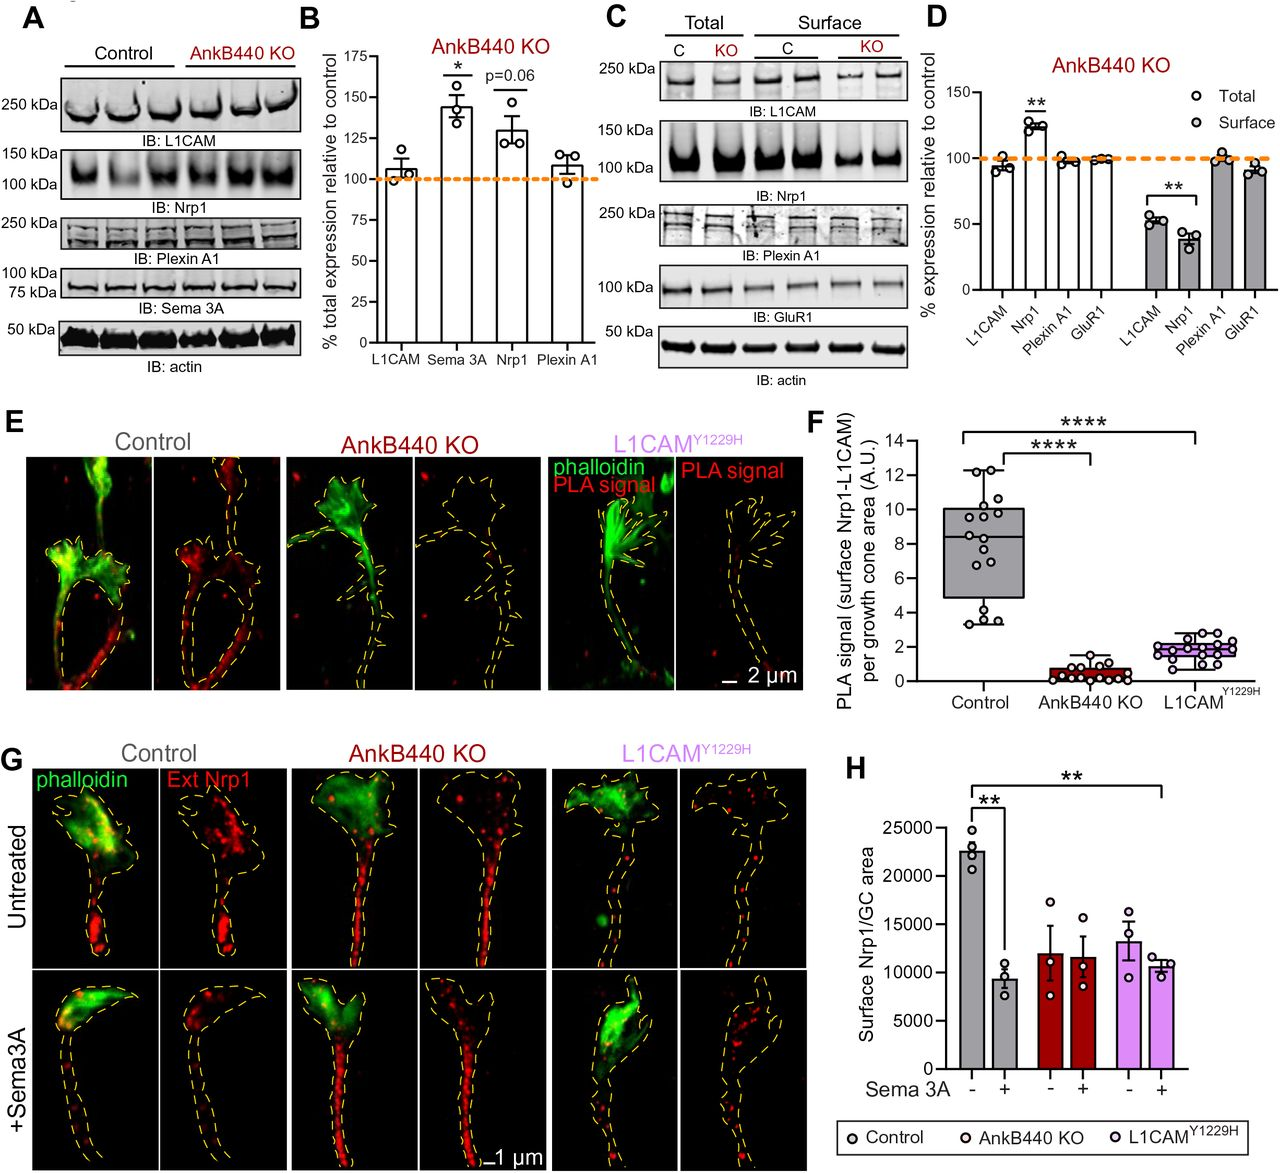 AnkB440 stabilizes the Sema 3A receptor complex L1CAM-Nrp1 at the cell surface of GCs. ( A ) Western blot analysis of the expression of Sema 3A, L1CAM and the Sema 3A receptors Nrp1 and Plexin A1 in the cortex of PND1 control and AnkB440 KO mice. ( B ) Quantification of protein levels normalized to actin in cortical lysates from PND1 mice of indicated genotypes relative to their levels in control brains. Data show mean ± SEM for three biological replicates per genotype. Unpaired t test. *p